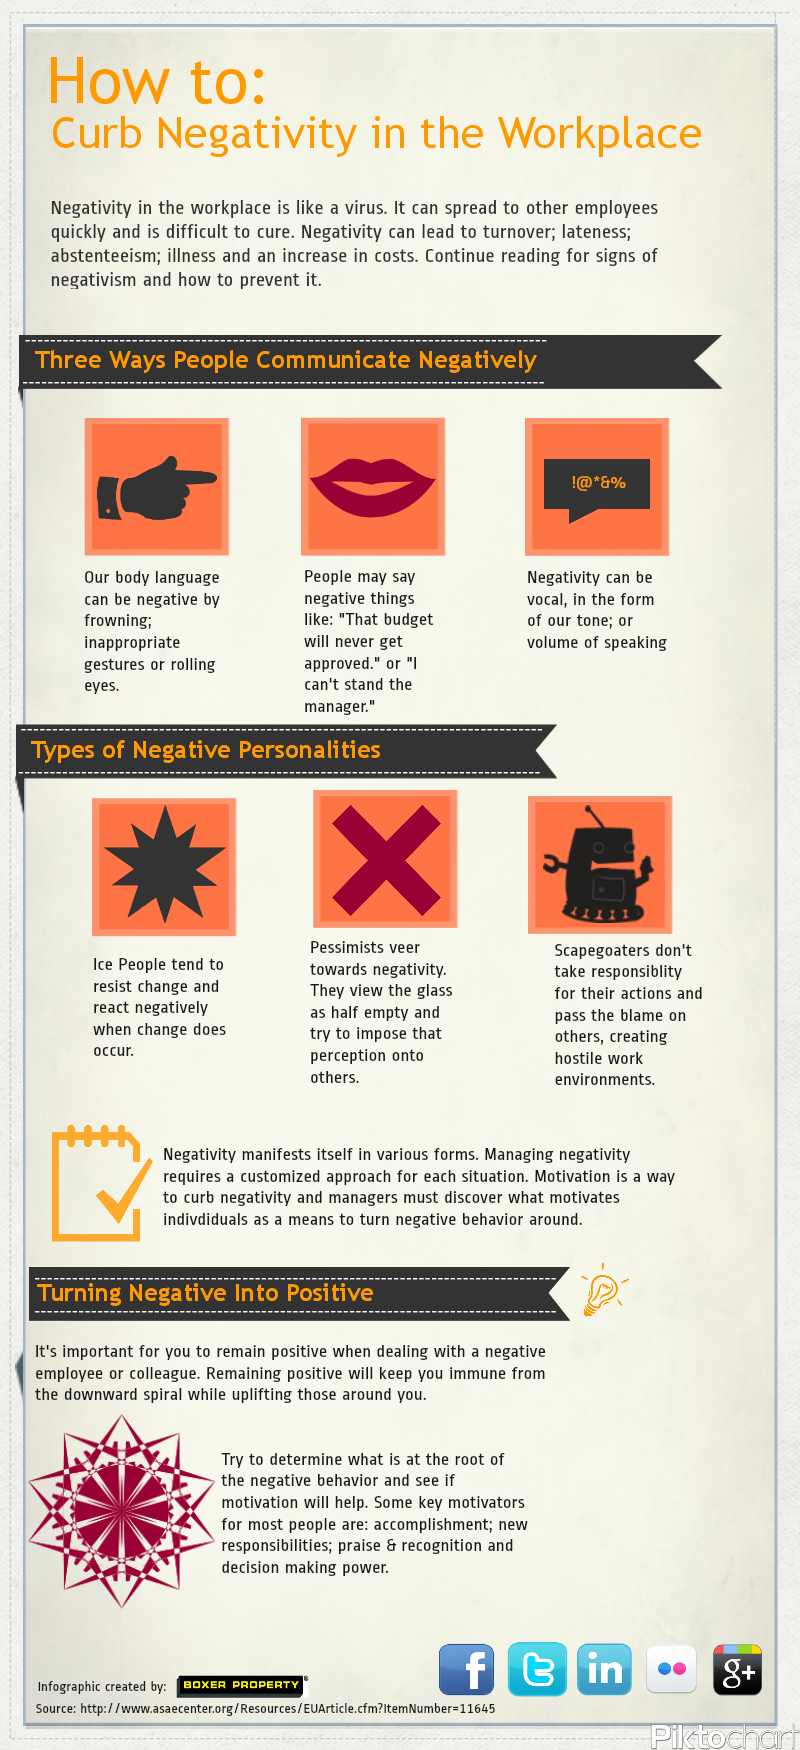 How to: Curb Negativity in the Workplace